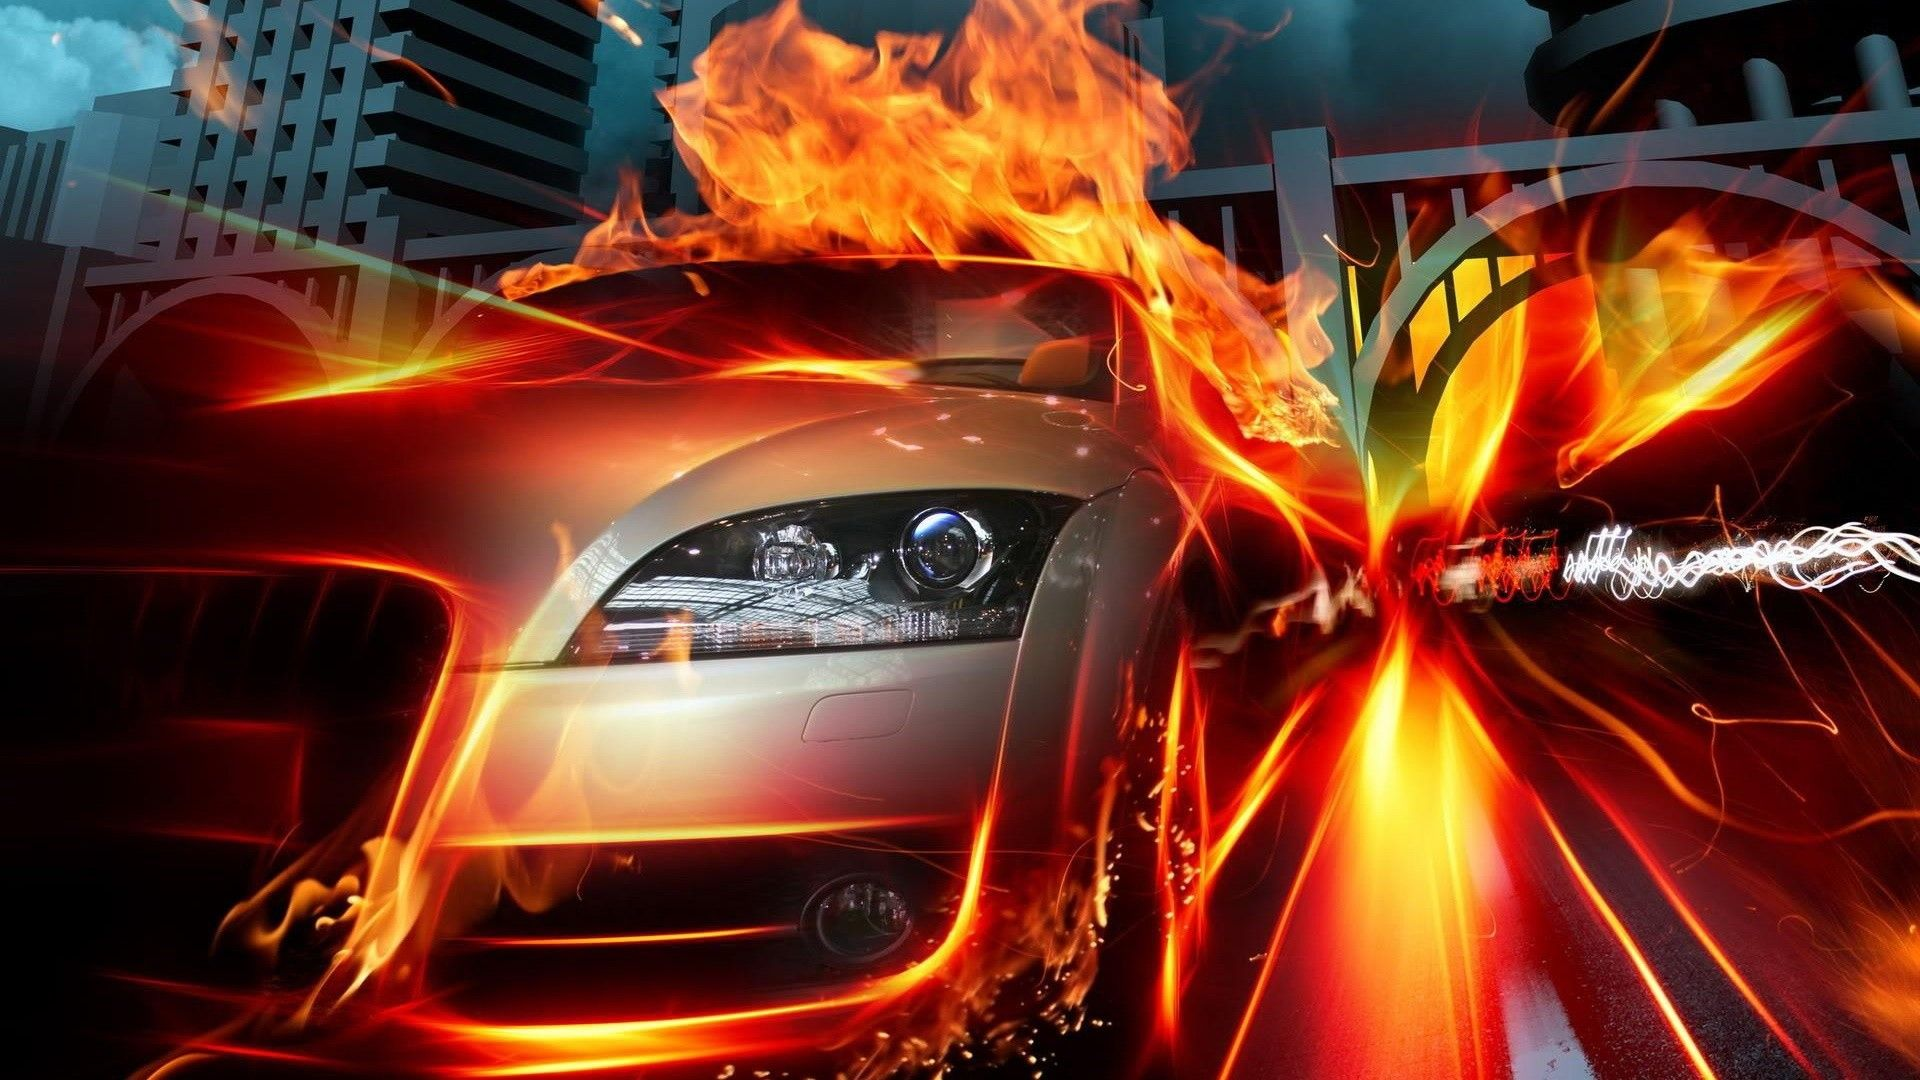 car on fire hd 4 cool wallpapers hd wallpaper fuego